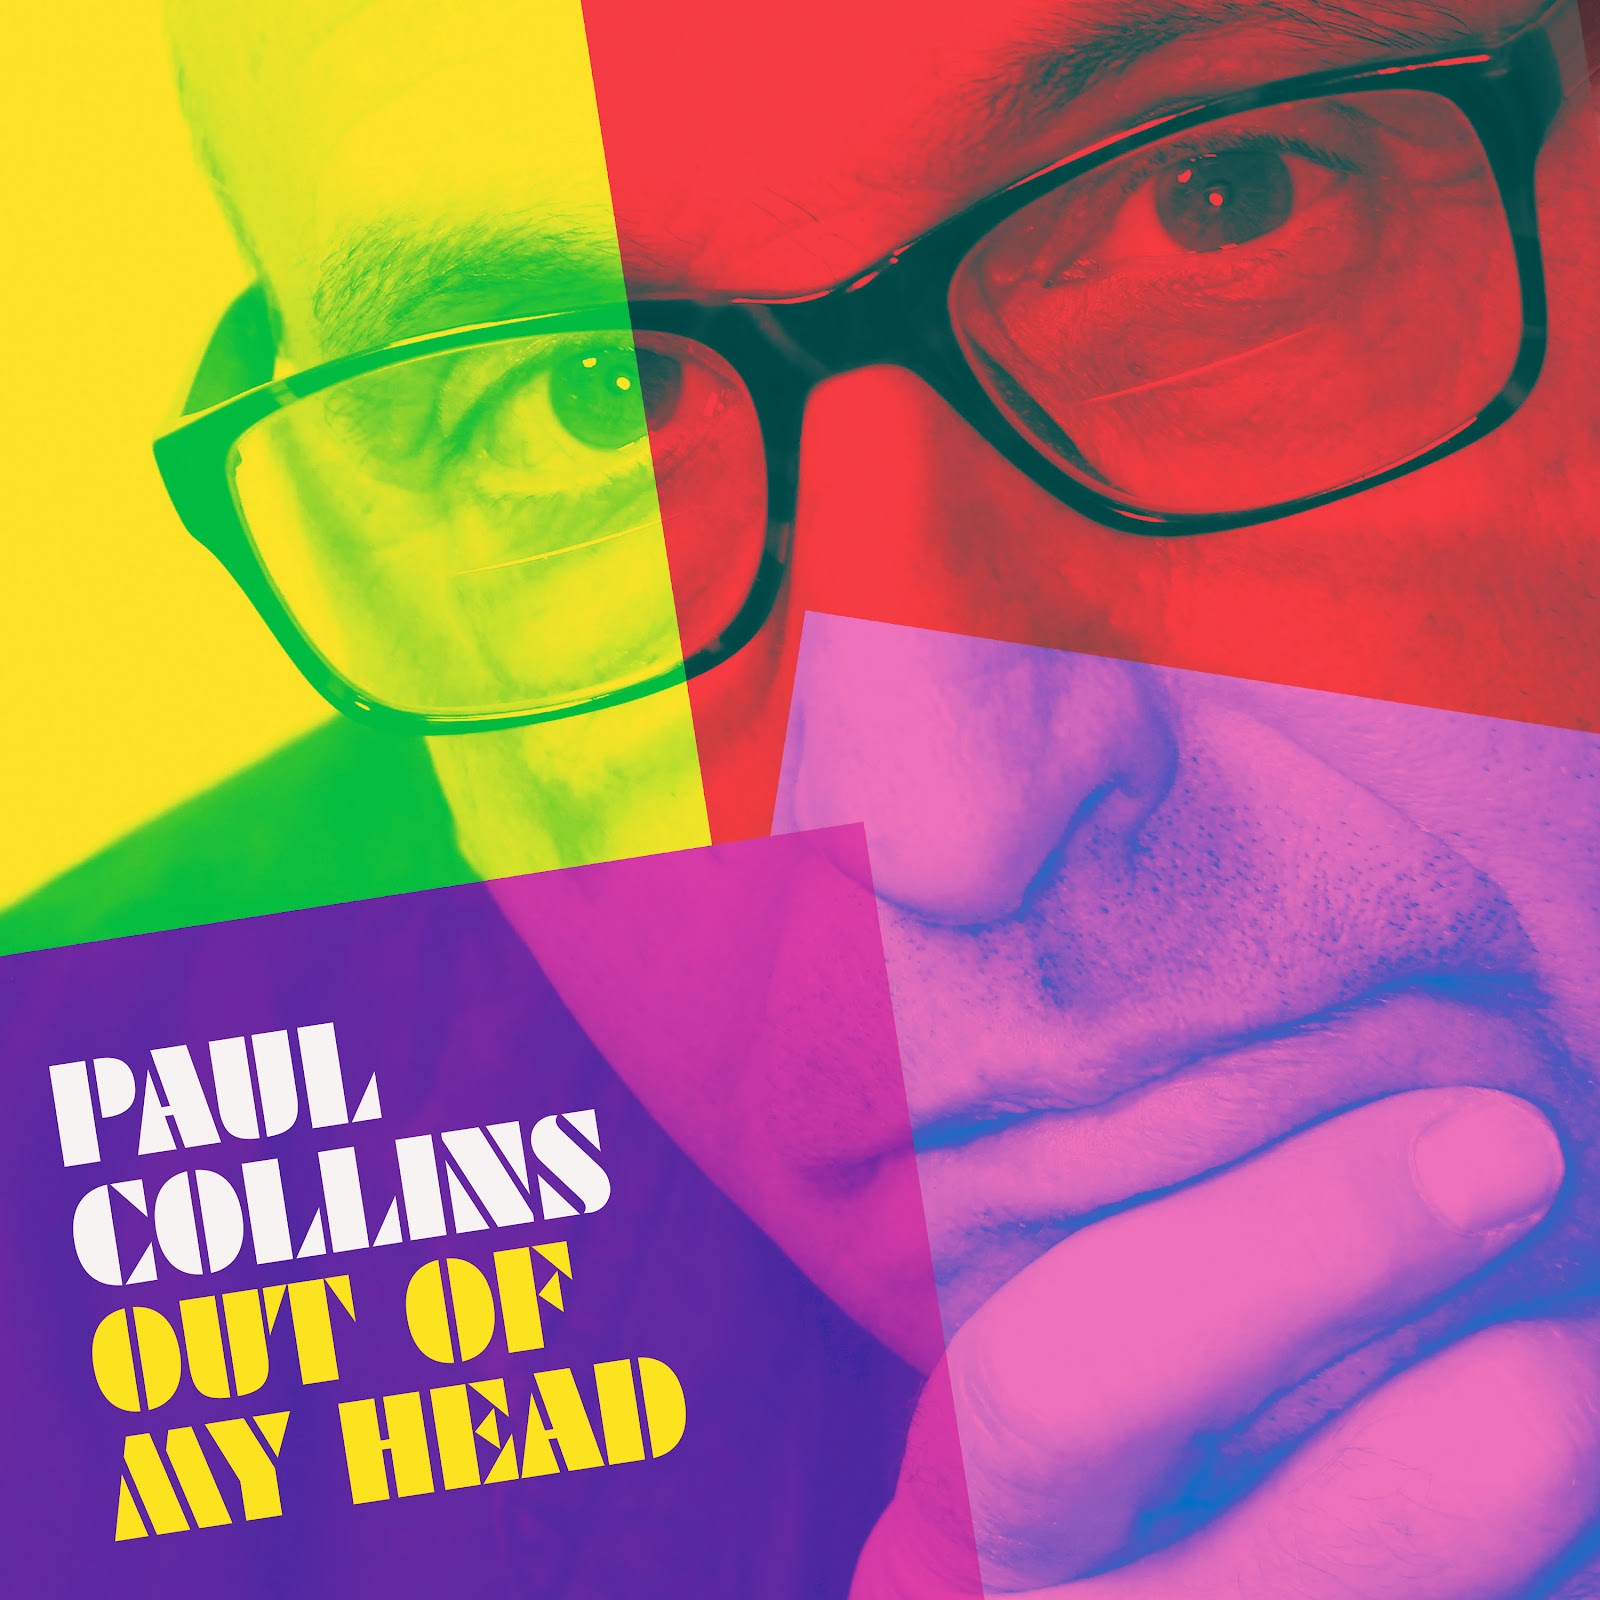 The Paul Collins Beat